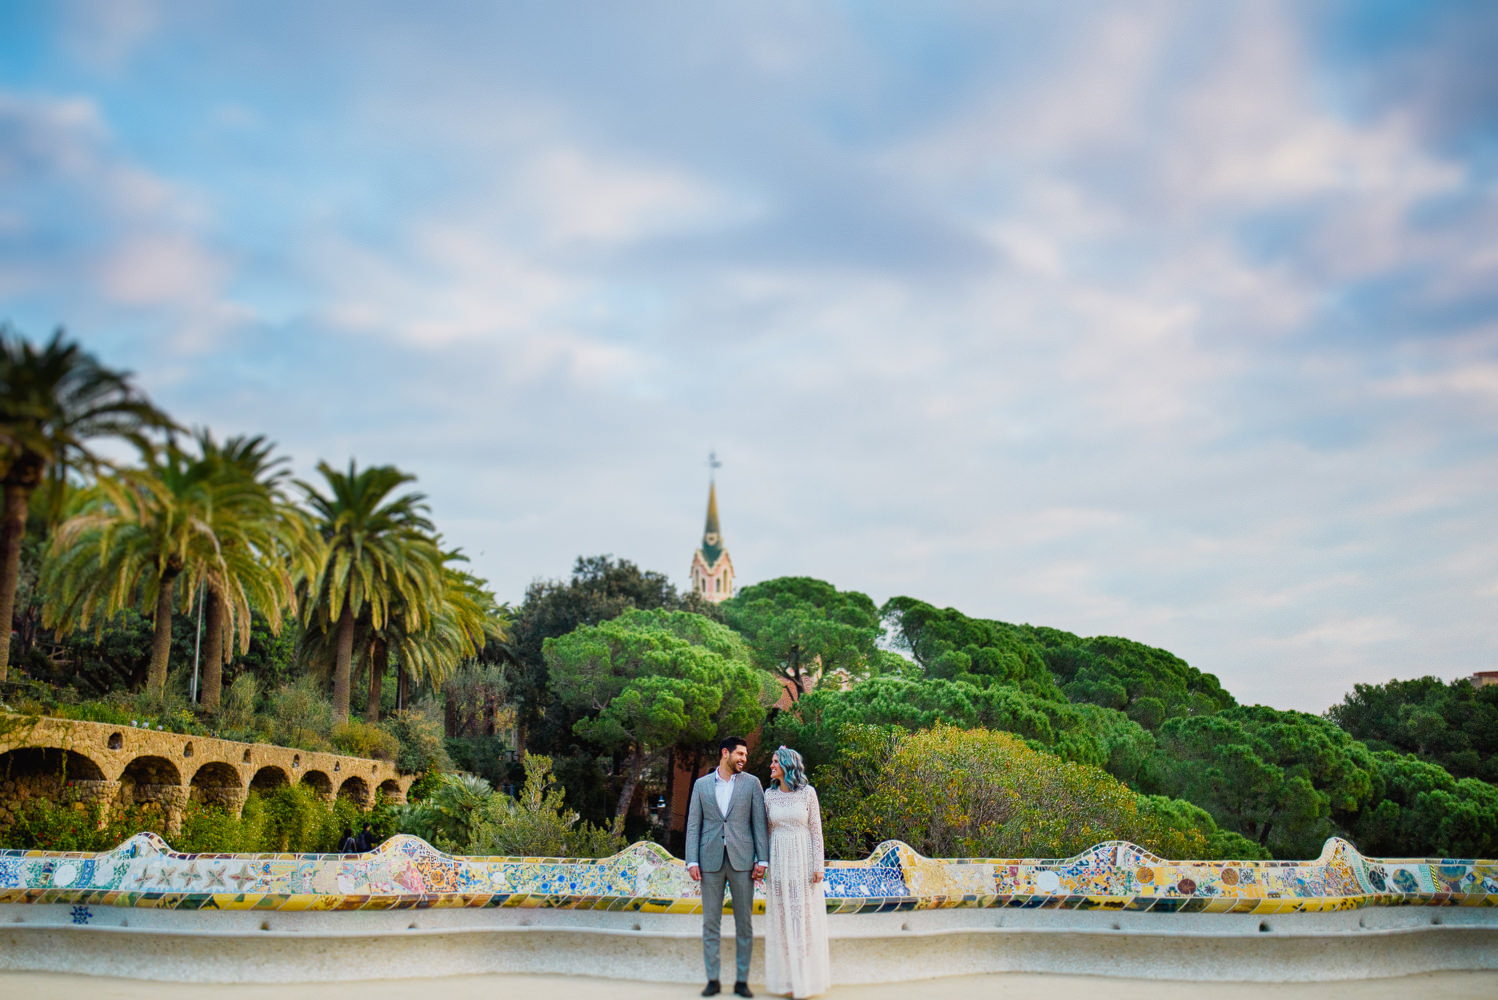 barcelona-wedding-photographer001.jpg